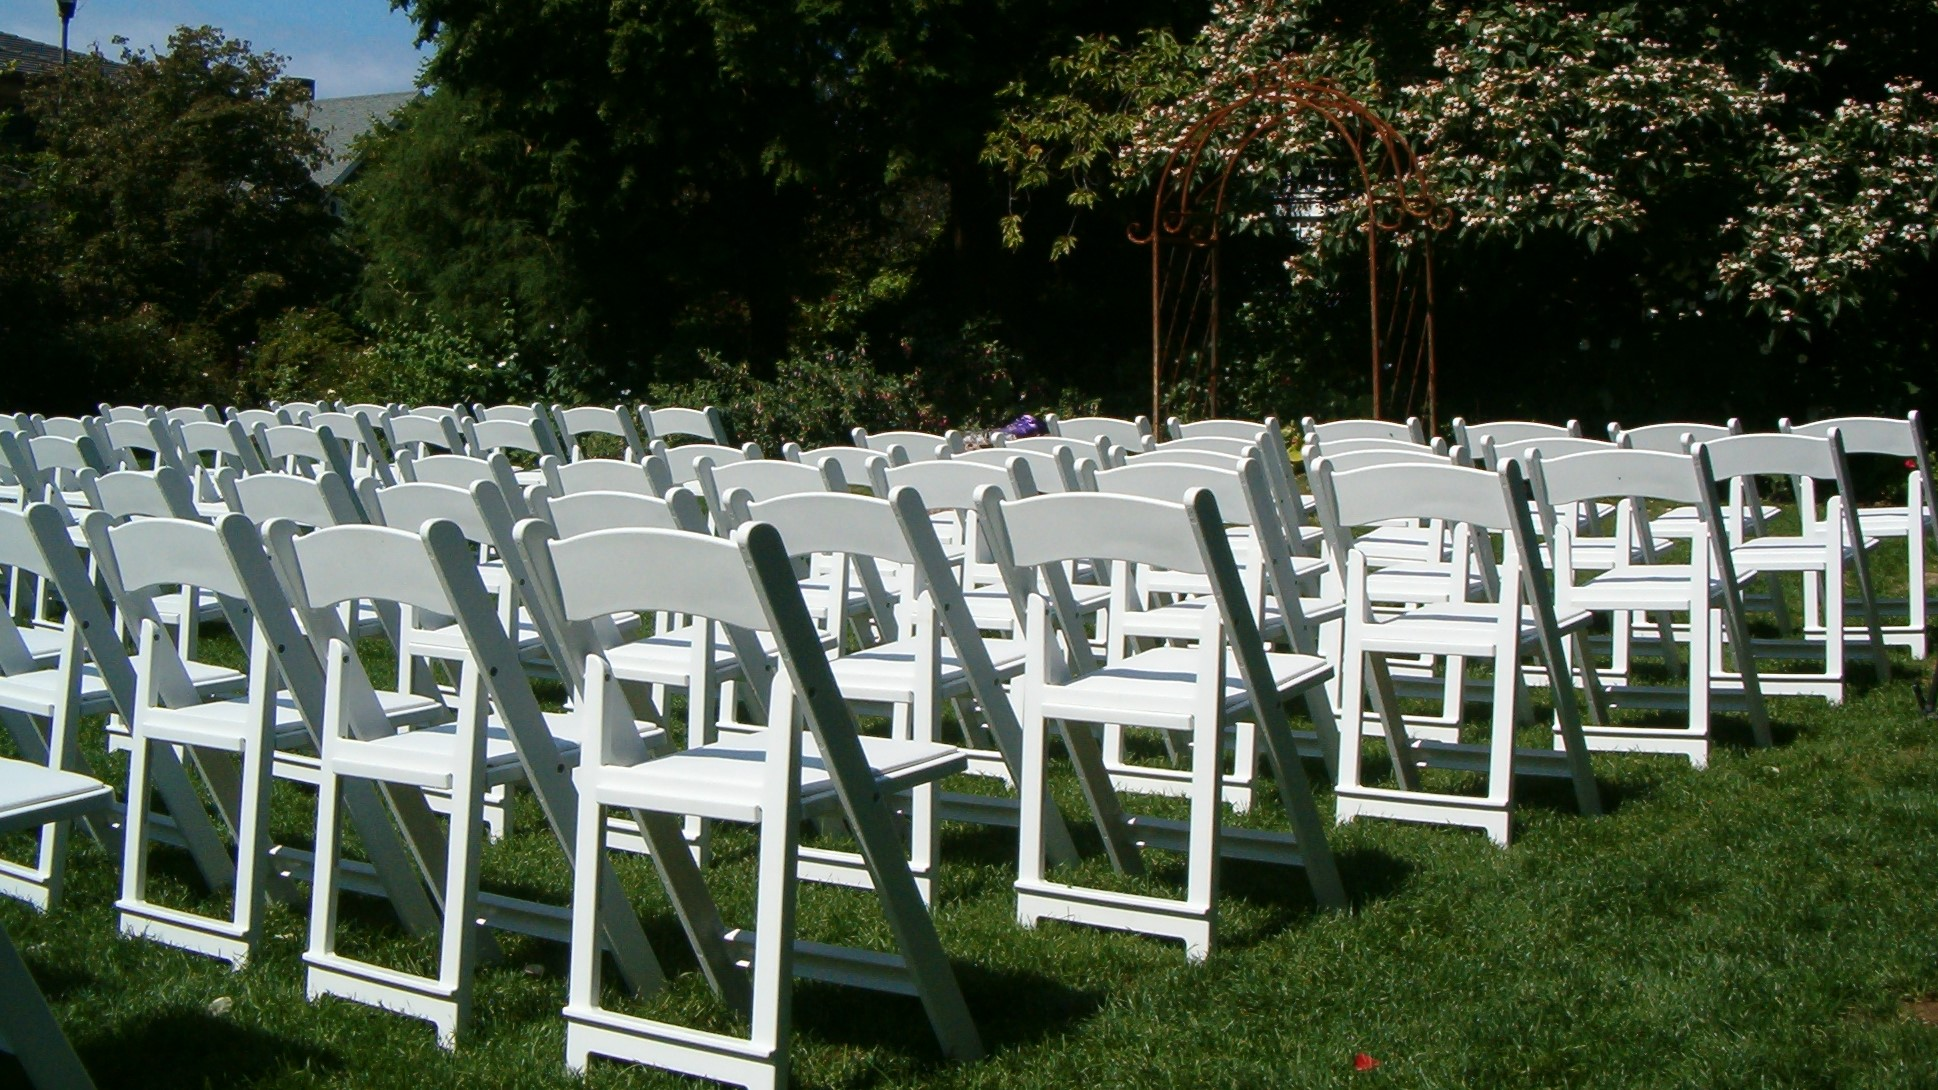 Chairs set up on grass